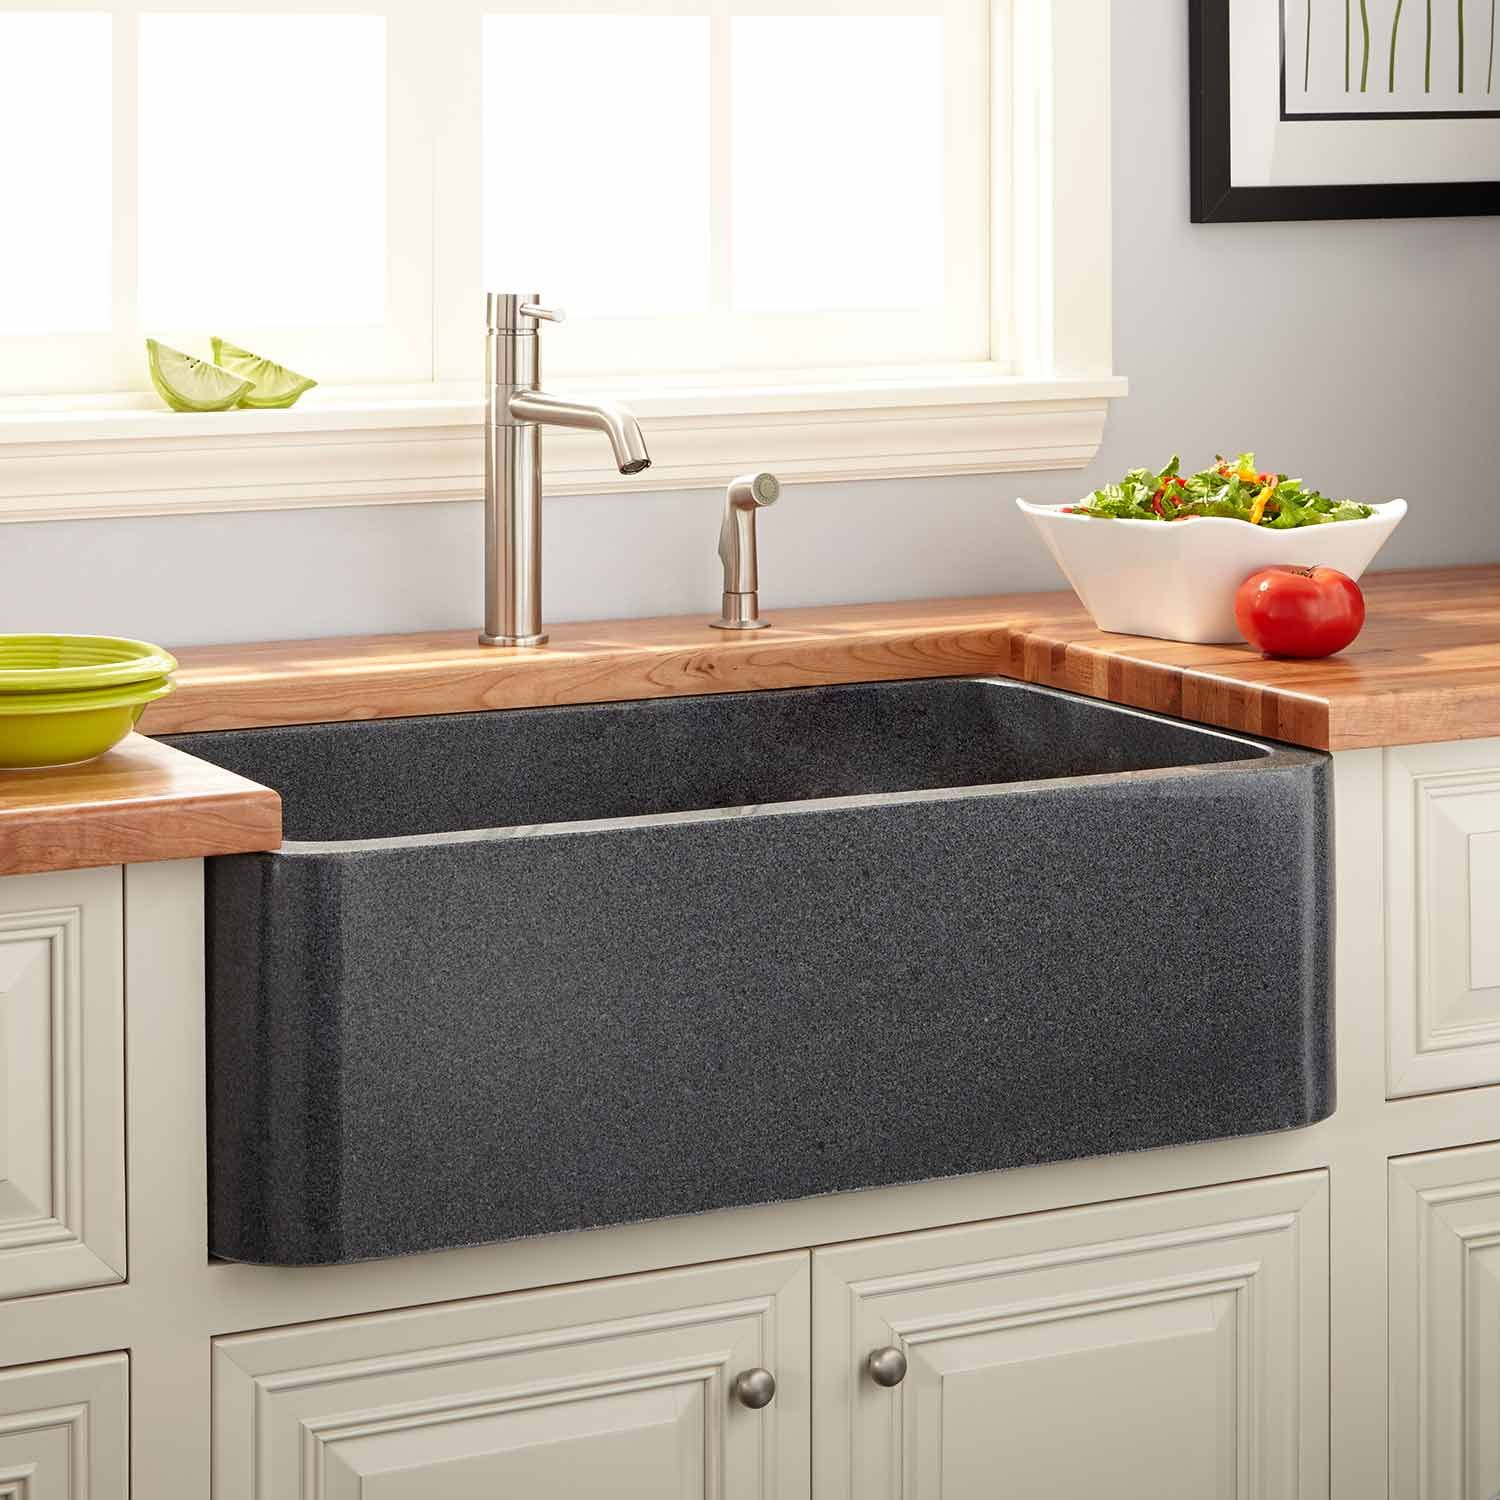 30 Risinger Fireclay Farmhouse Sink Smooth Apron Black Farmhouse Sinks Kitchen With Images Stone Farmhouse Sink Fireclay Farmhouse Sink Kitchen Sink Remodel